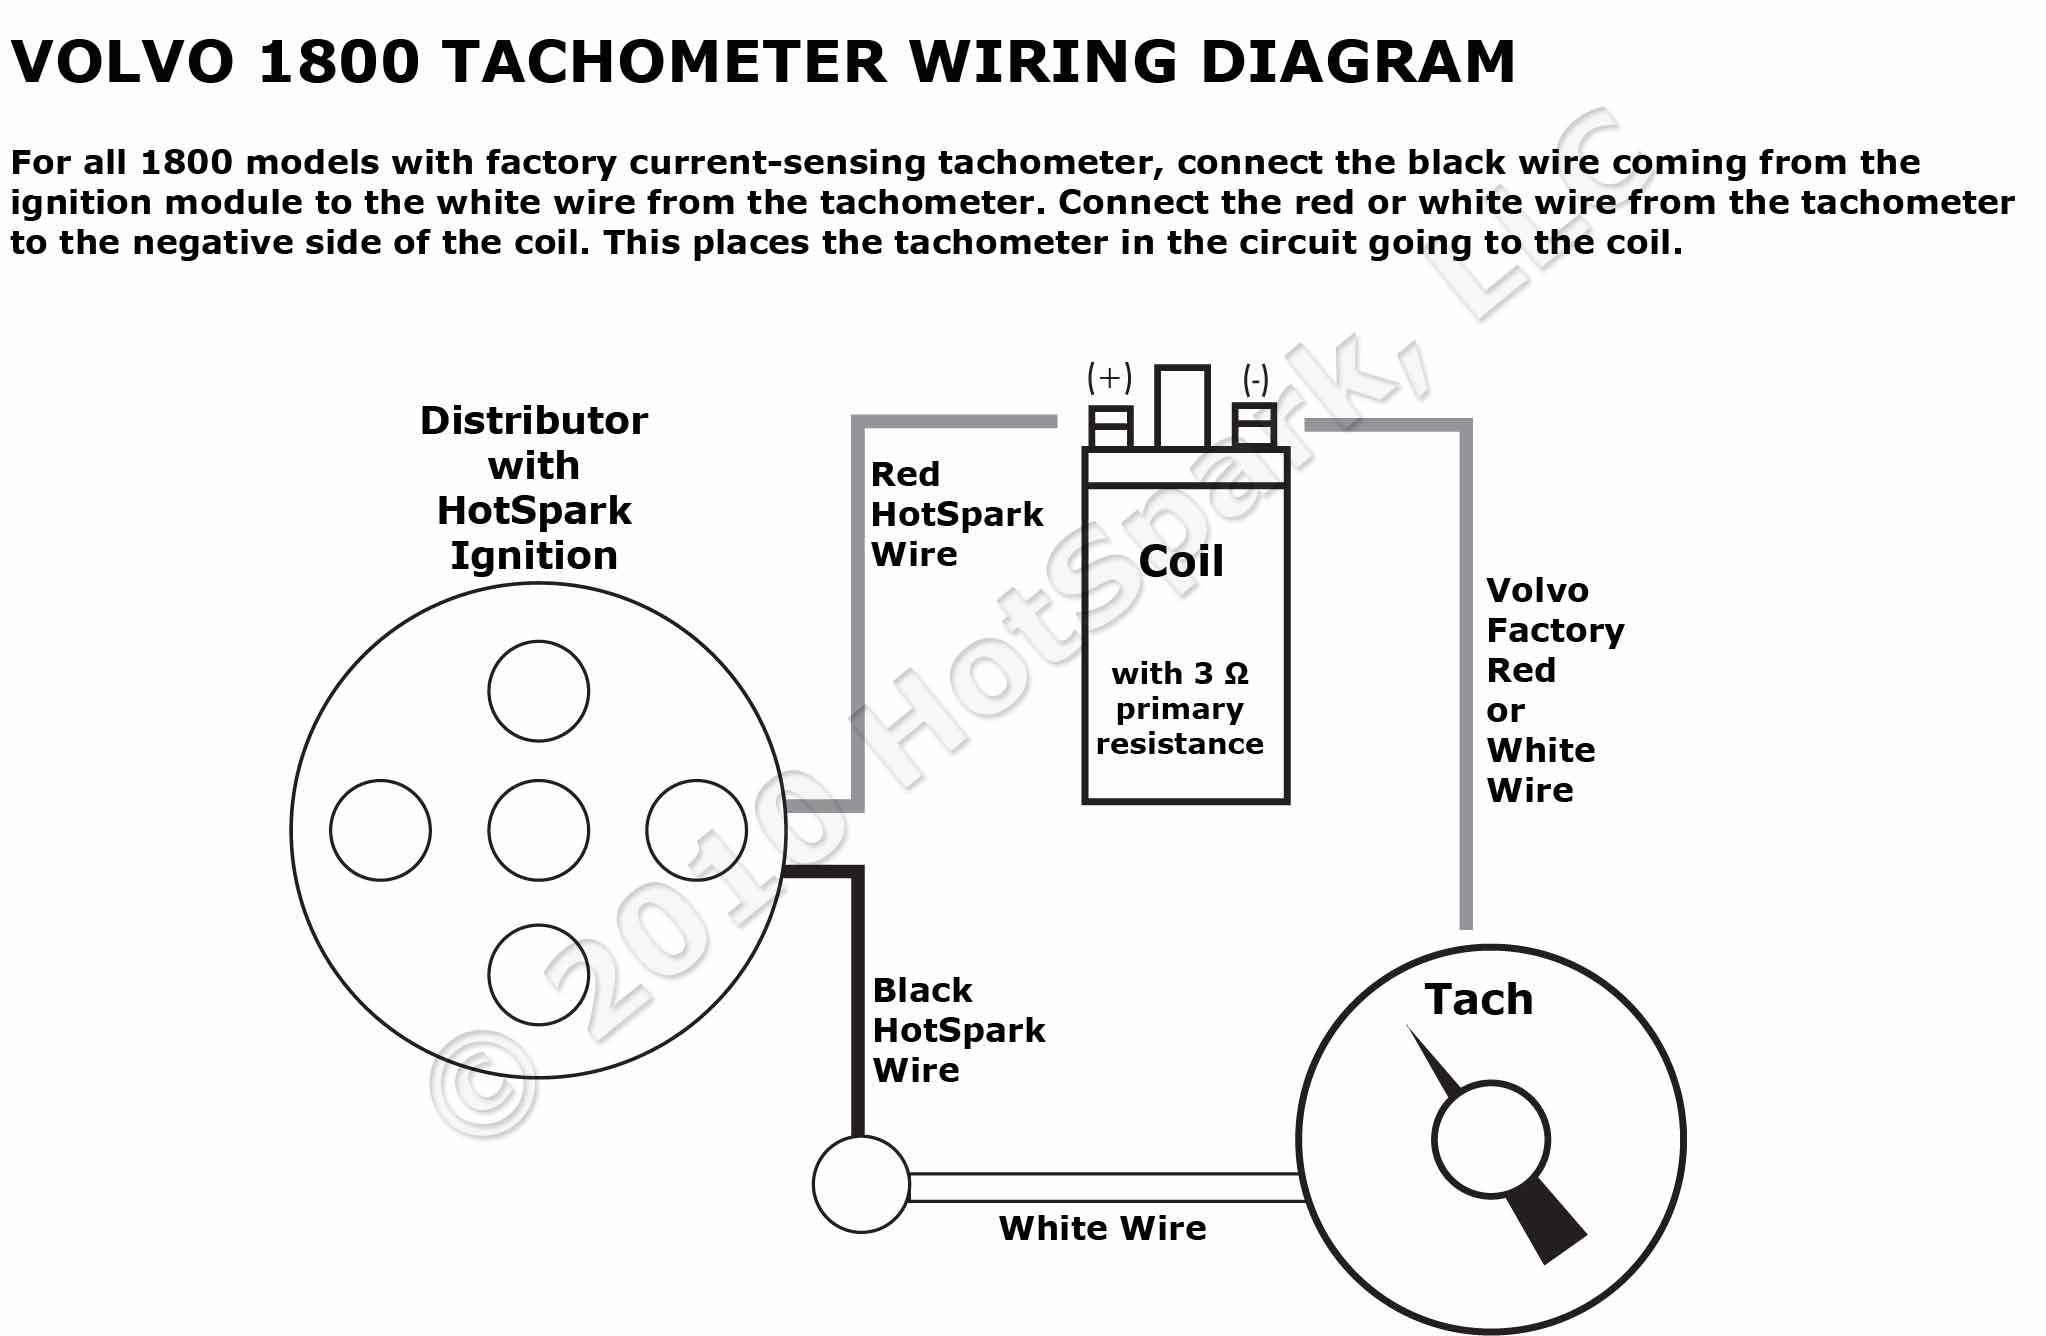 Volvo 1800 Tachometer and Hot Spark Wiring Diagram tachometer wiring diagram 1971 chevelle tachometer wiring diagram 86 Mustang Wiring Diagram at panicattacktreatment.co